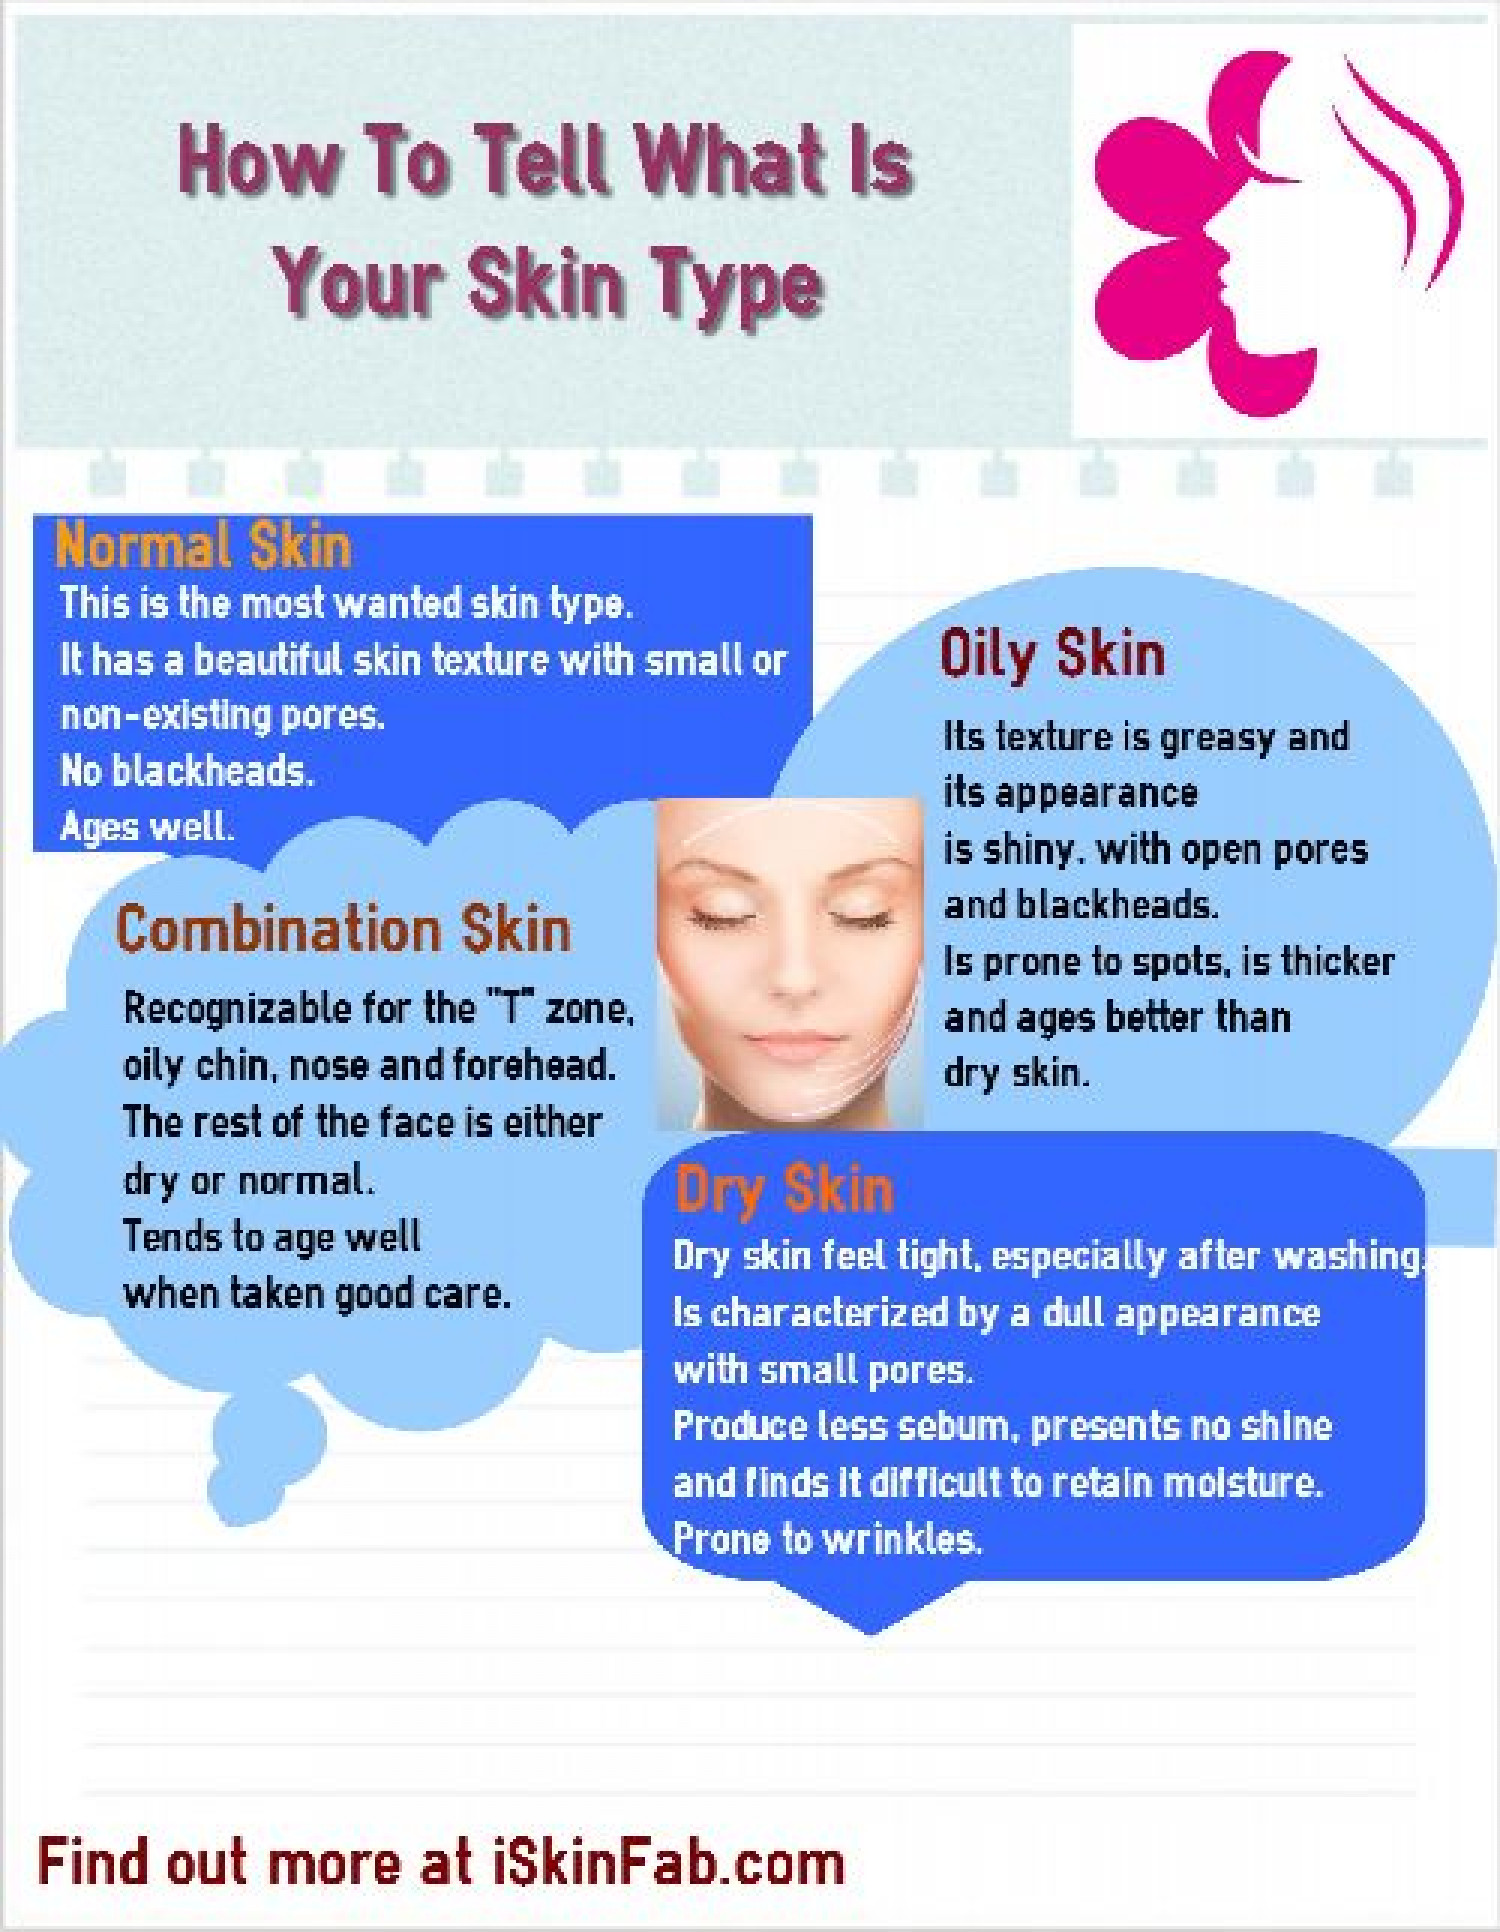 How To Tell Your Skin Type Infographic